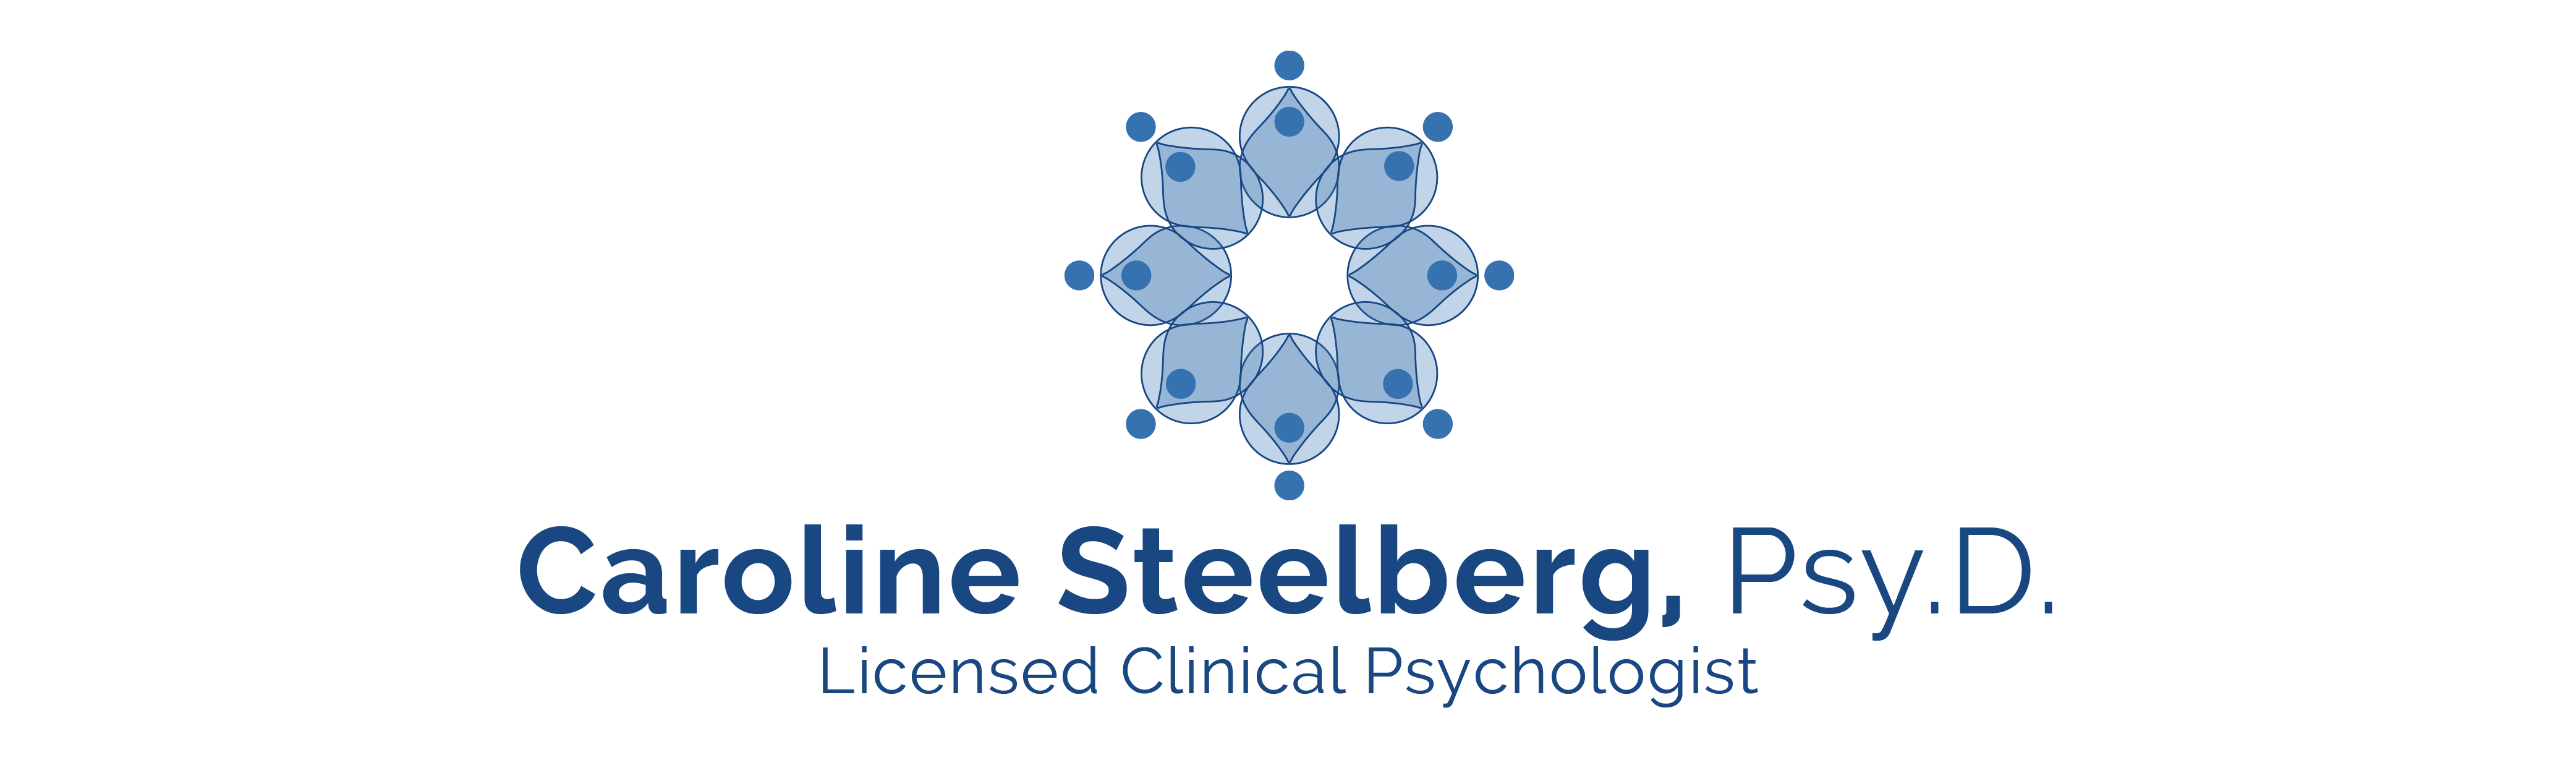 CAROLINE  STEELBERG, PSY.D. - Chicago Psychologist